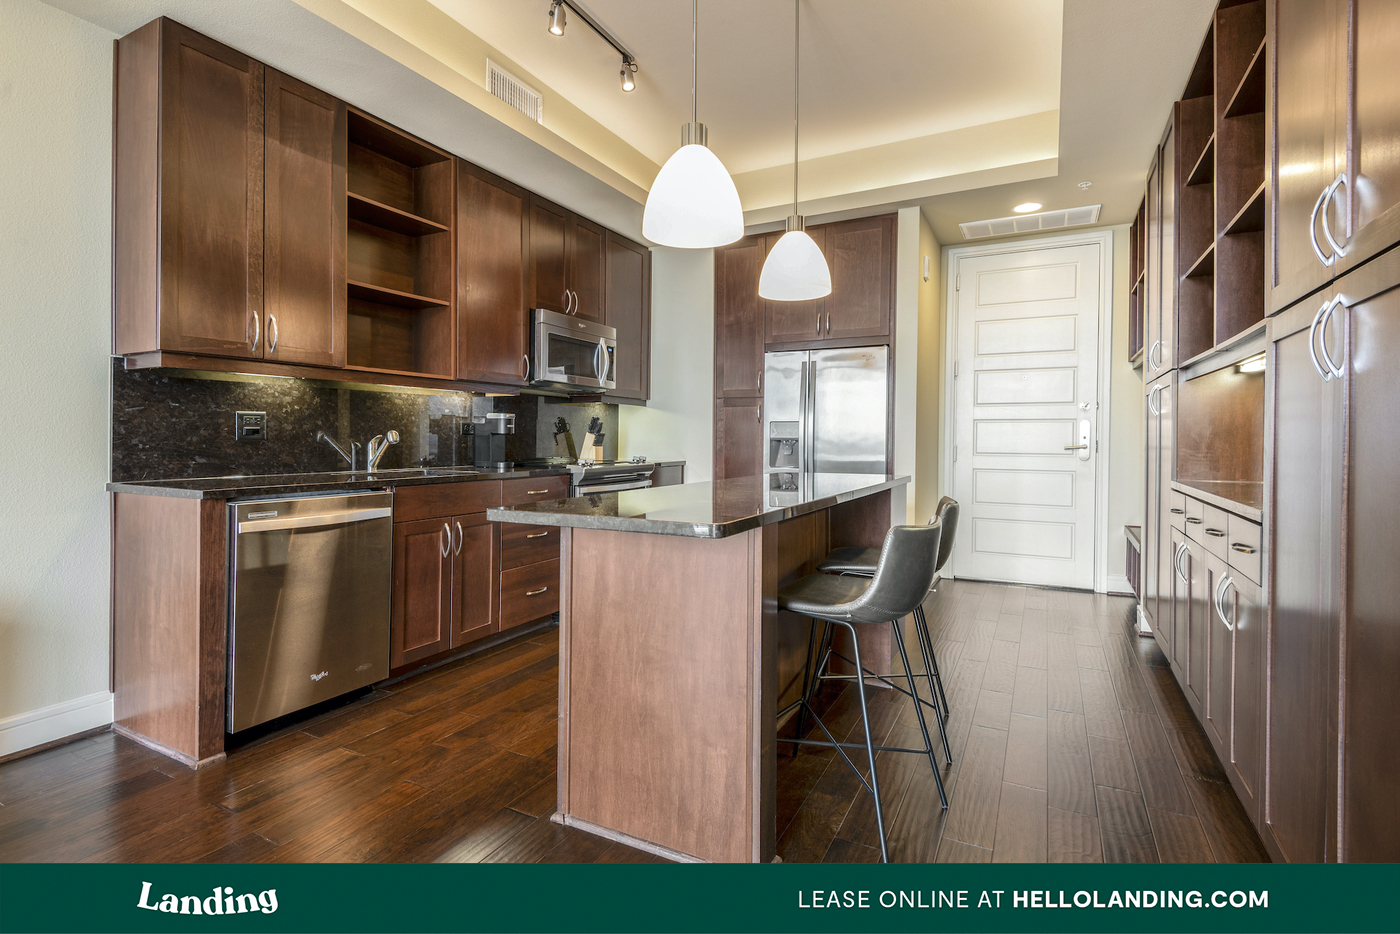 Prairie View at Village West for rent